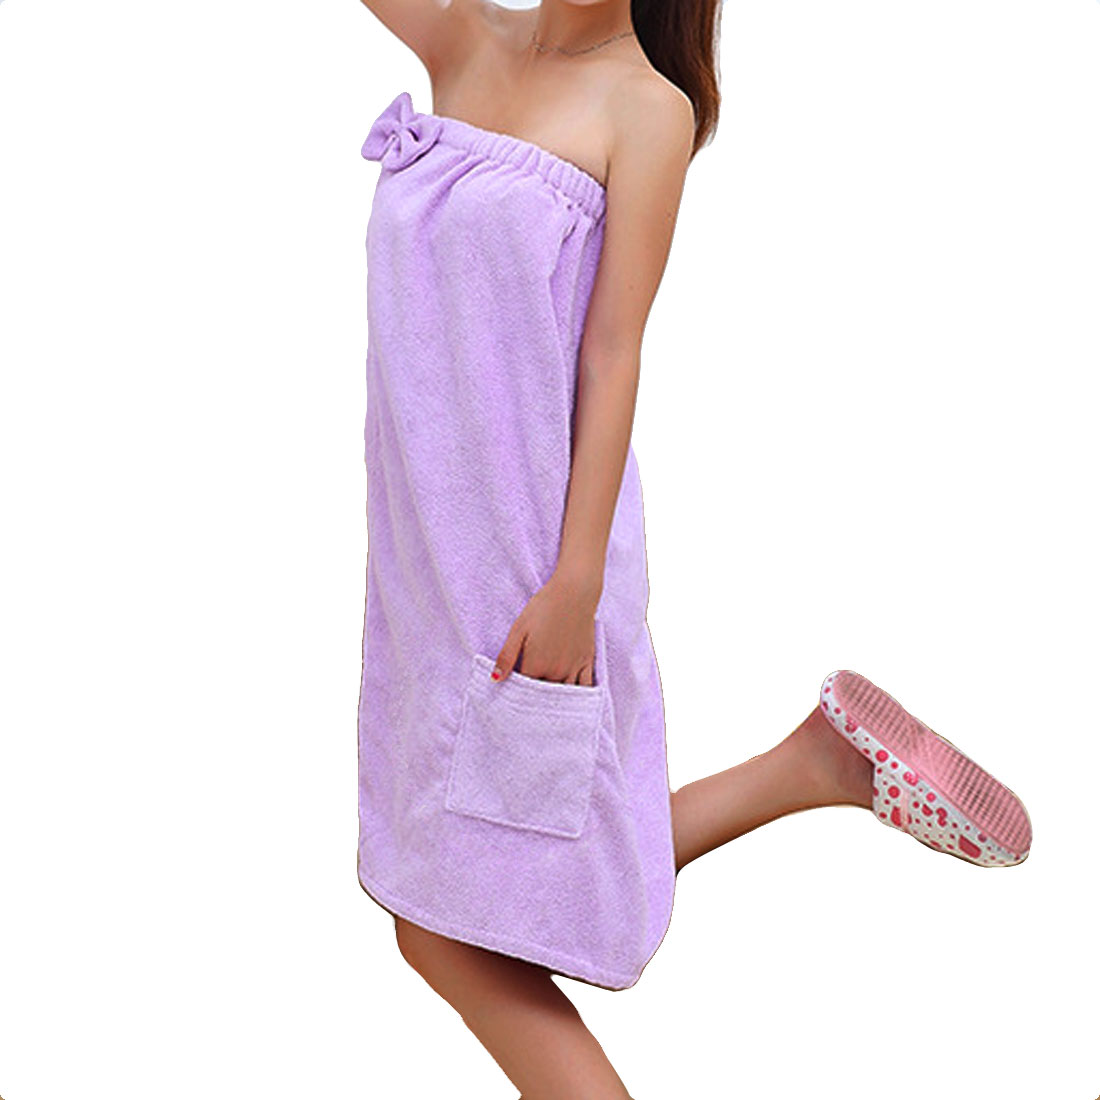 Lady Microfiber Elastic Bowknot Beach Swimming Shower Bath Towel Wrap Skirt Washcloth Purple